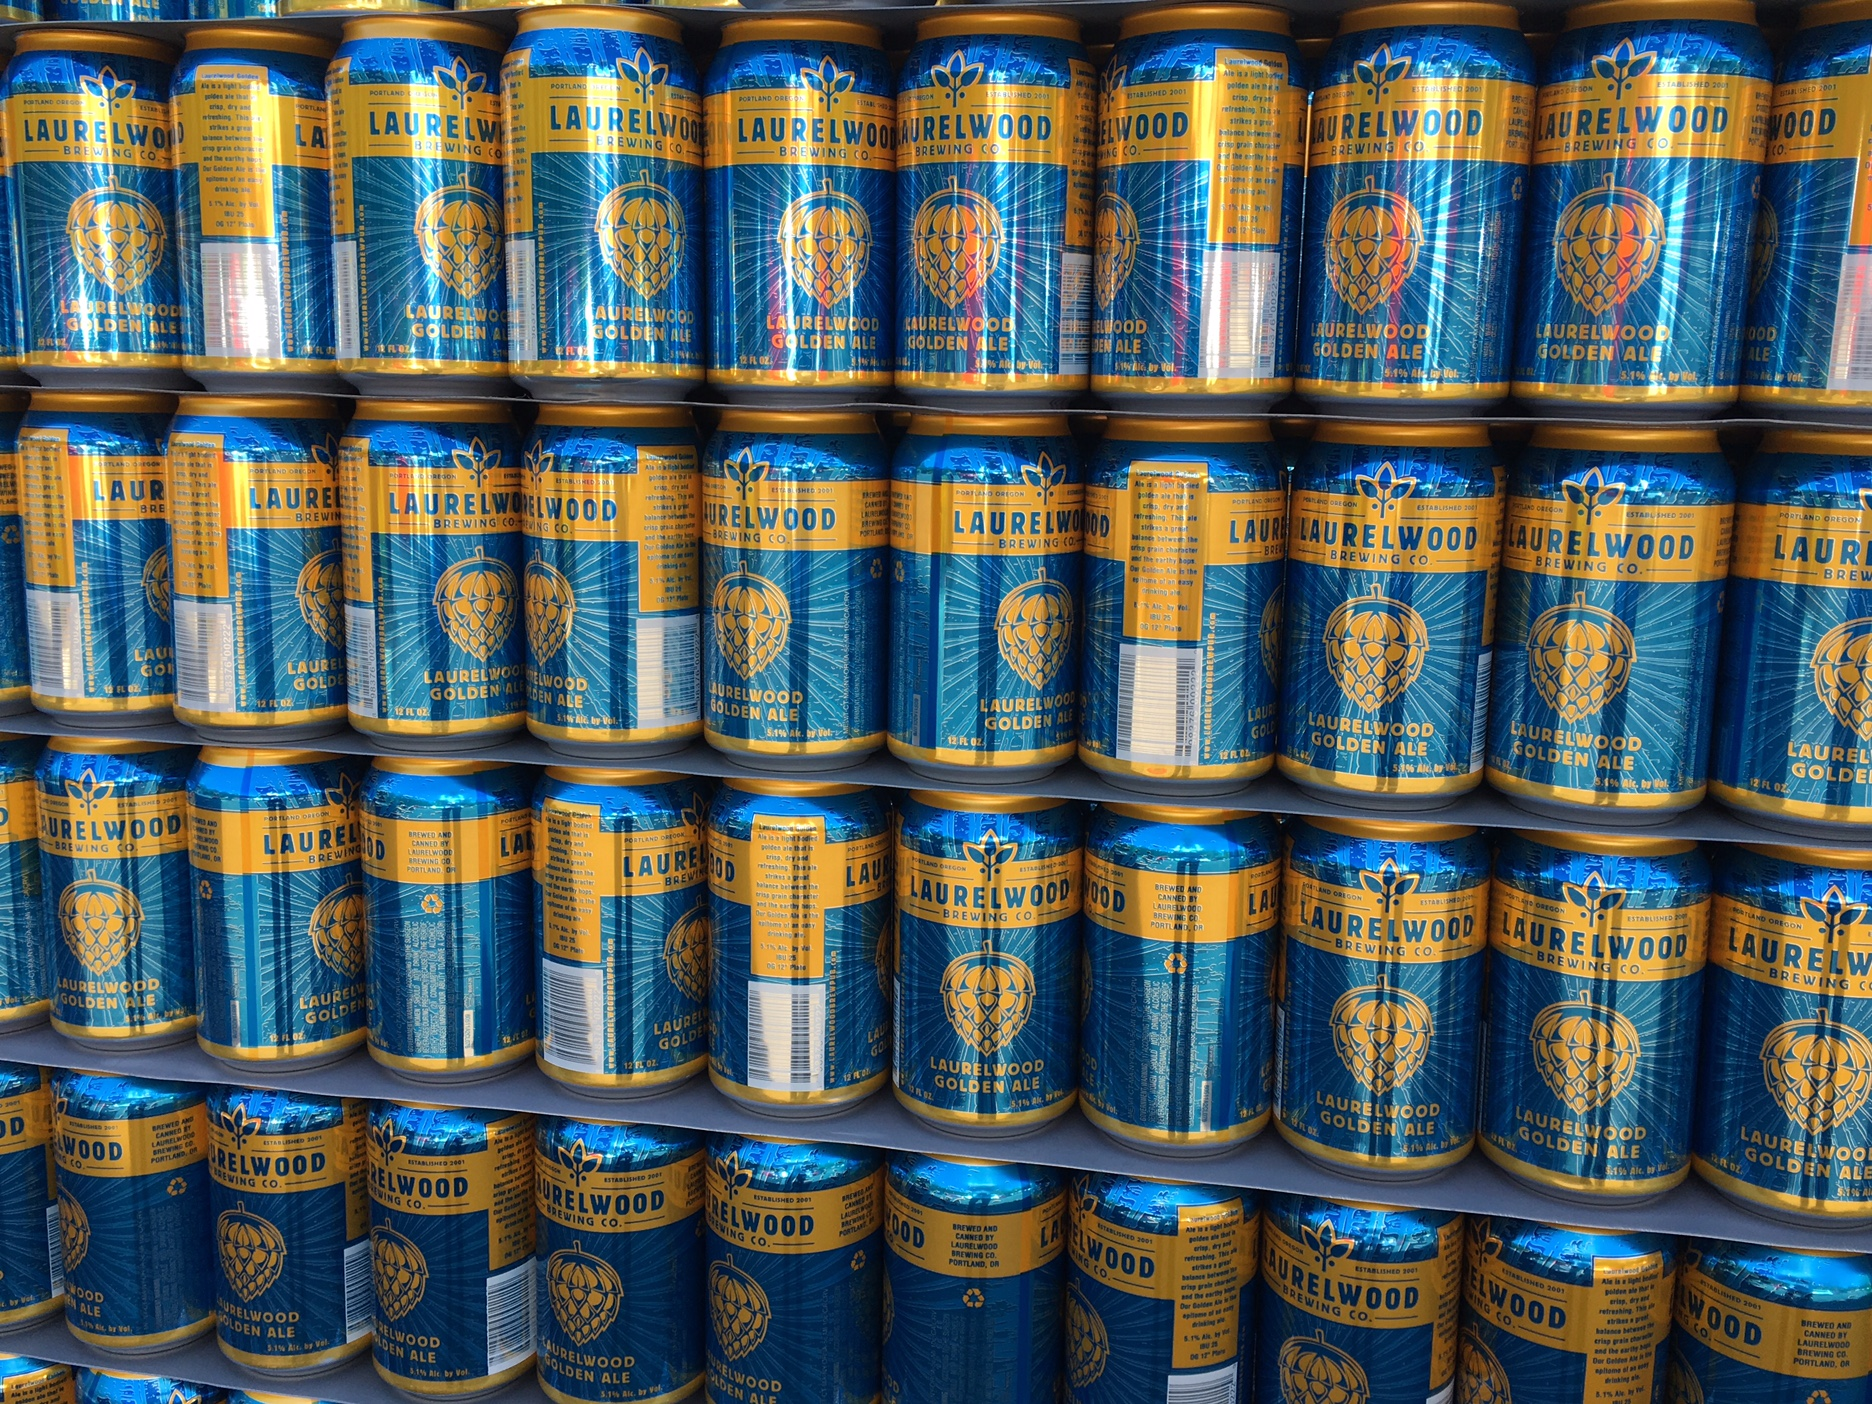 A pallet of empty cans of Laurelwood Golden Ale.